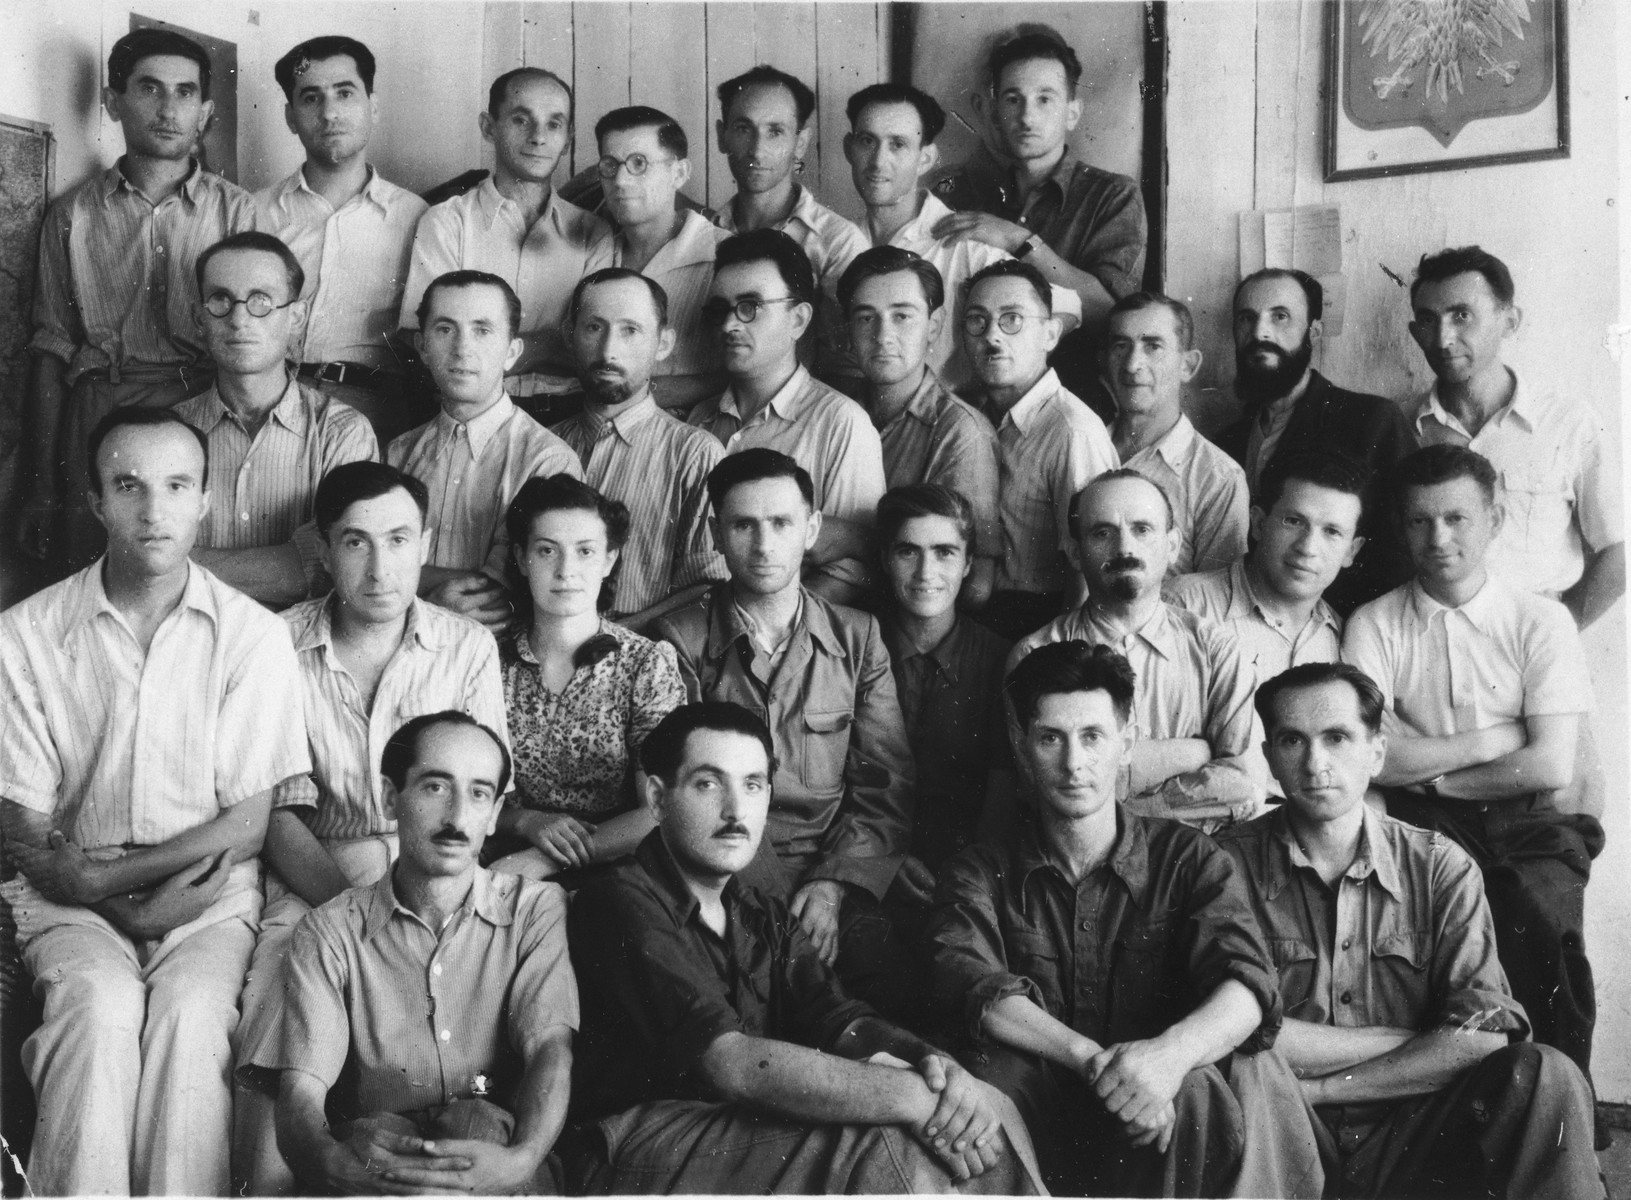 Group portrait of Polish Jewish refugees in Samarkand, Uzbekistan.  Among those pictured is Peretz Miransky (top row, third from the right).